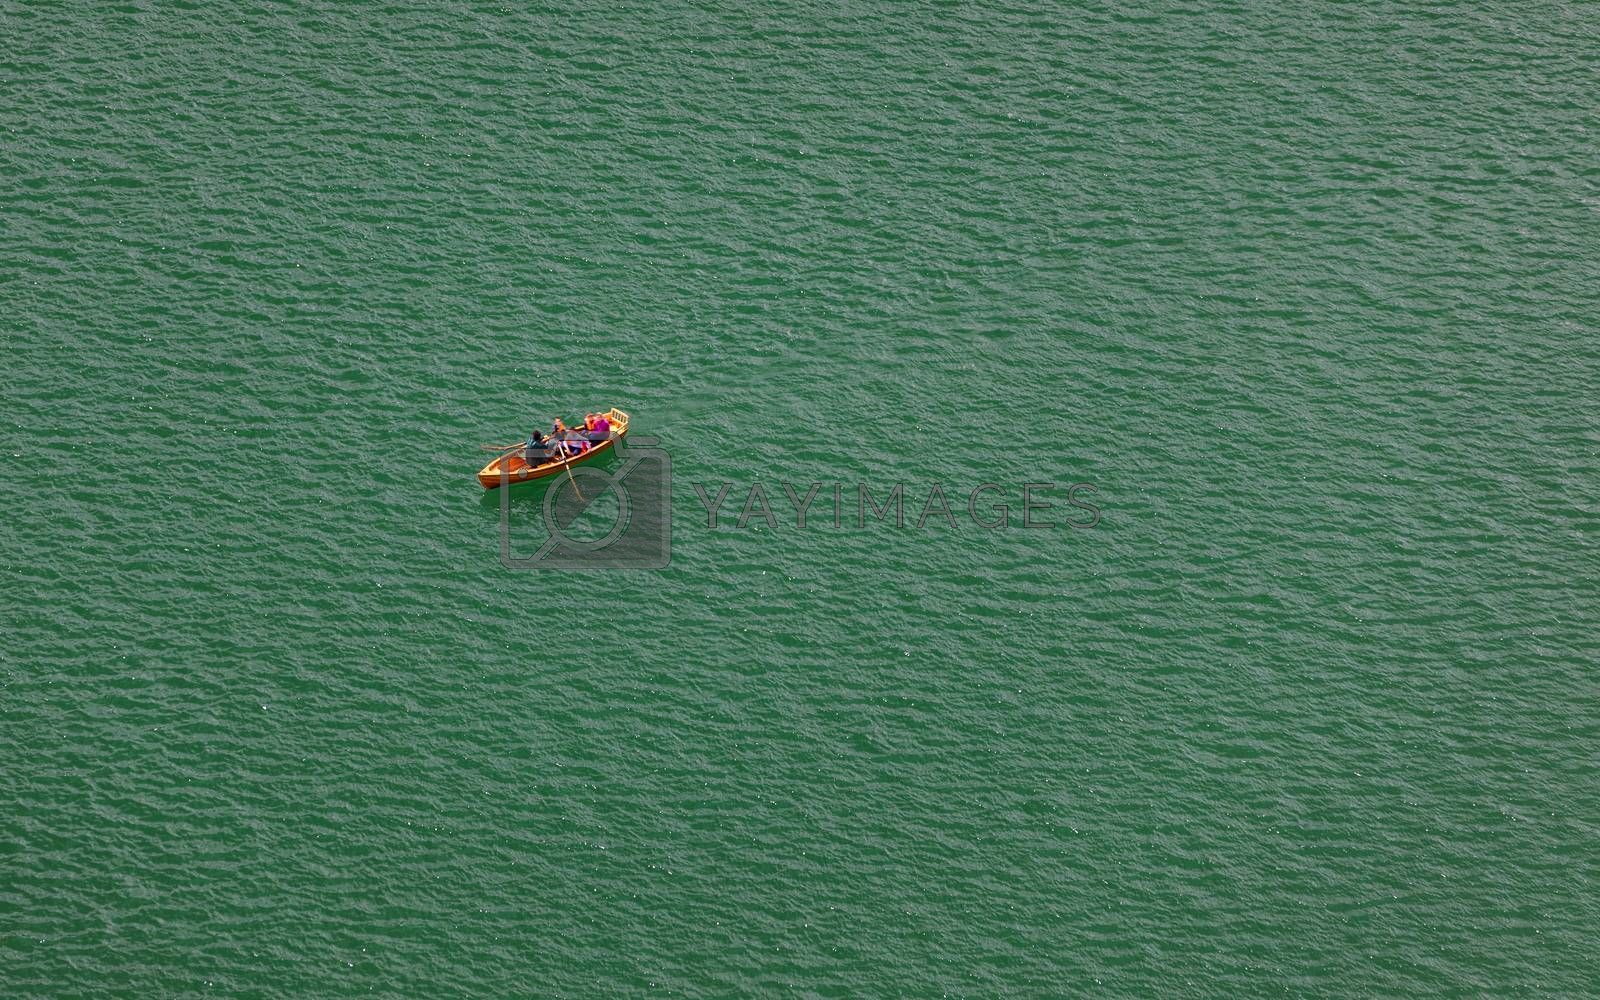 Lake Bled, Slovenia. Top view of a boat sailing in the lake. Bled lake is the most famous lake in Slovenia. Bled, Slovenia.